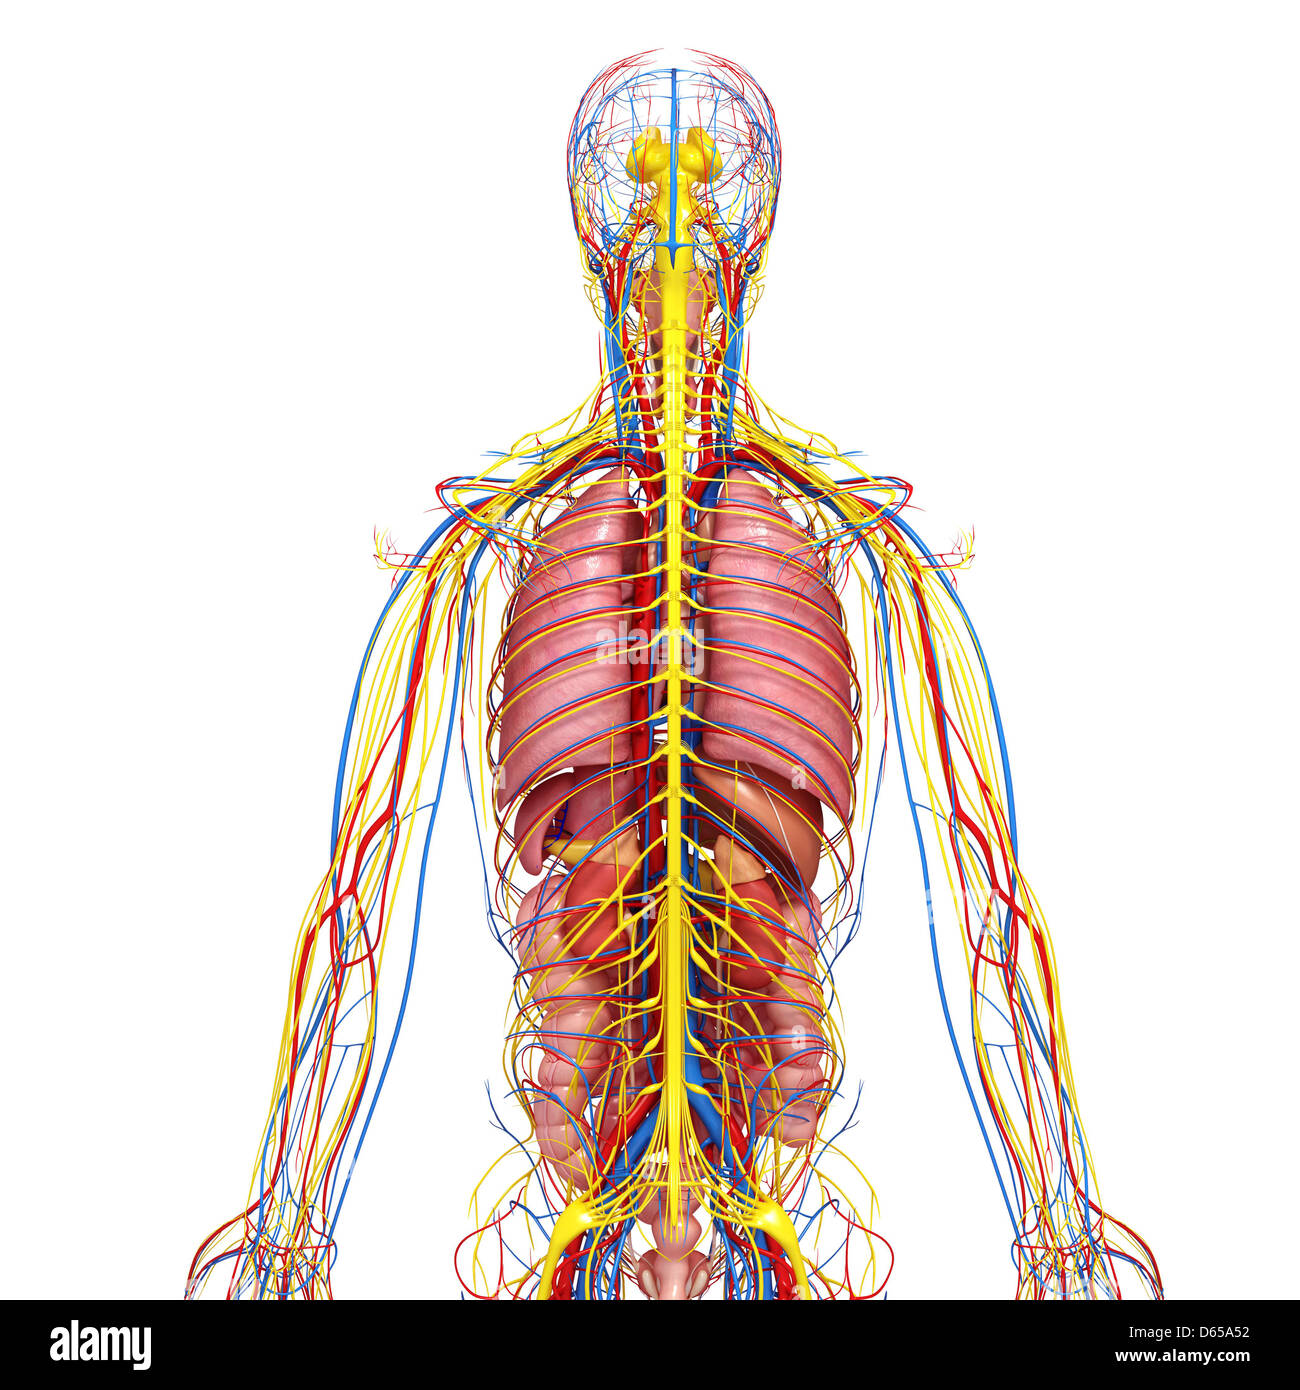 Human Kidney Anatomy Adrenal Gland Stock Photos & Human Kidney ...